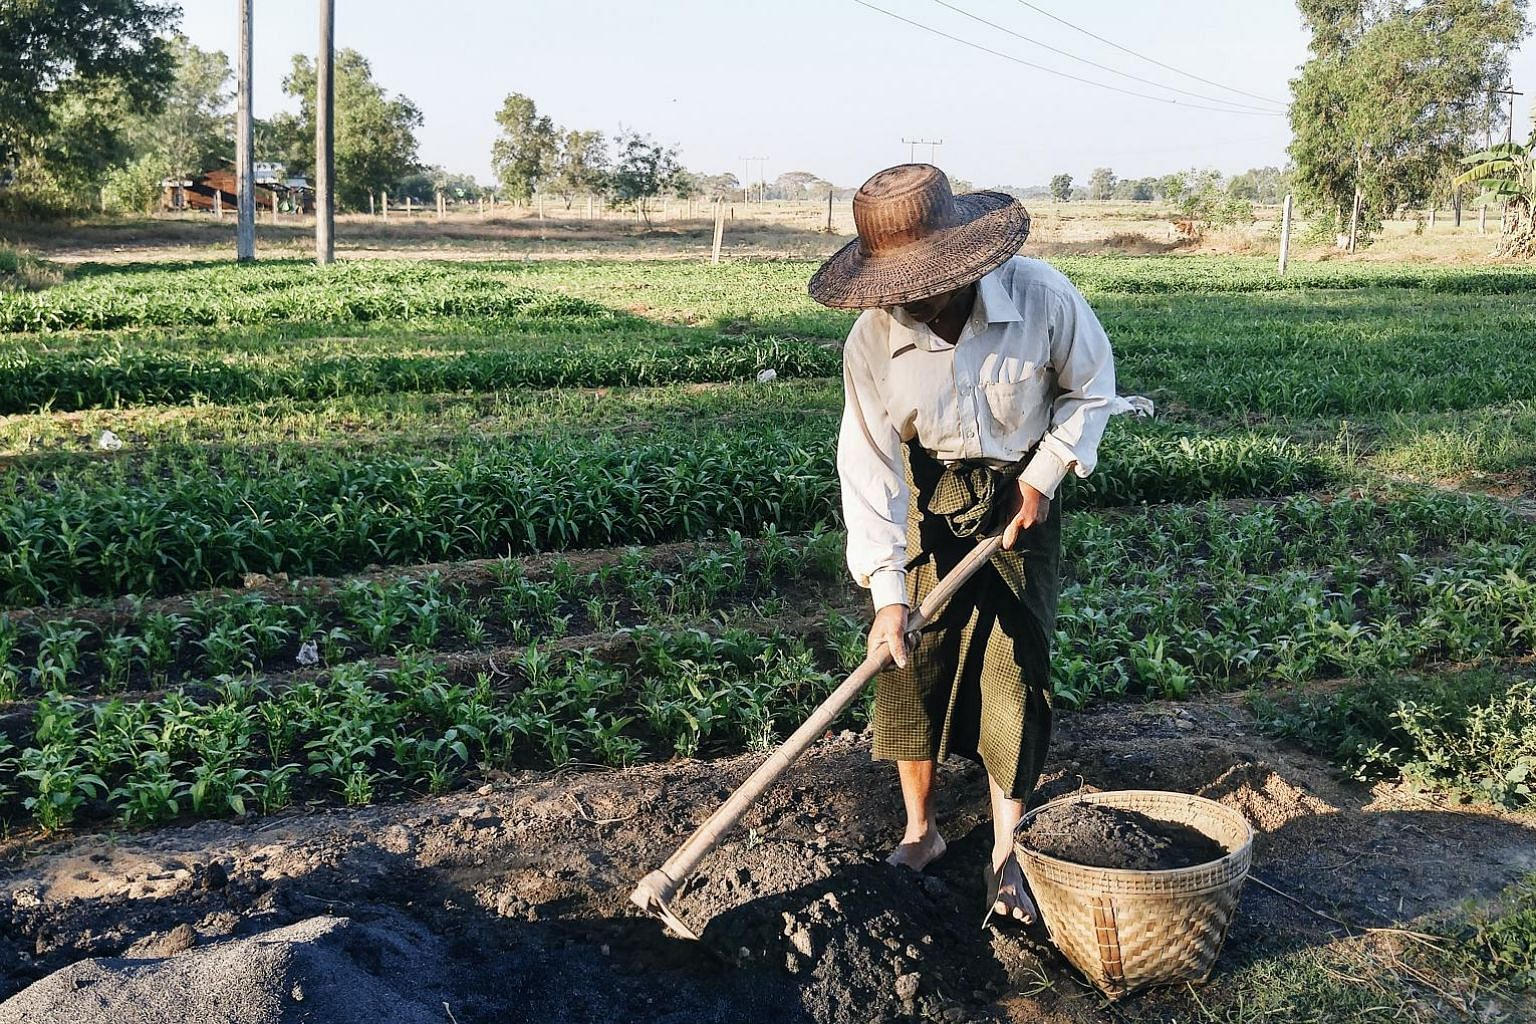 Myanmar farmer U Ko Aye starts work every day at sunrise, takes a lunch break at 11am and leaves the fields only at sunset. The 59-year-old diversifies his crops: harvesting rice twice a year and growing mustard and watercress, which take only a mont